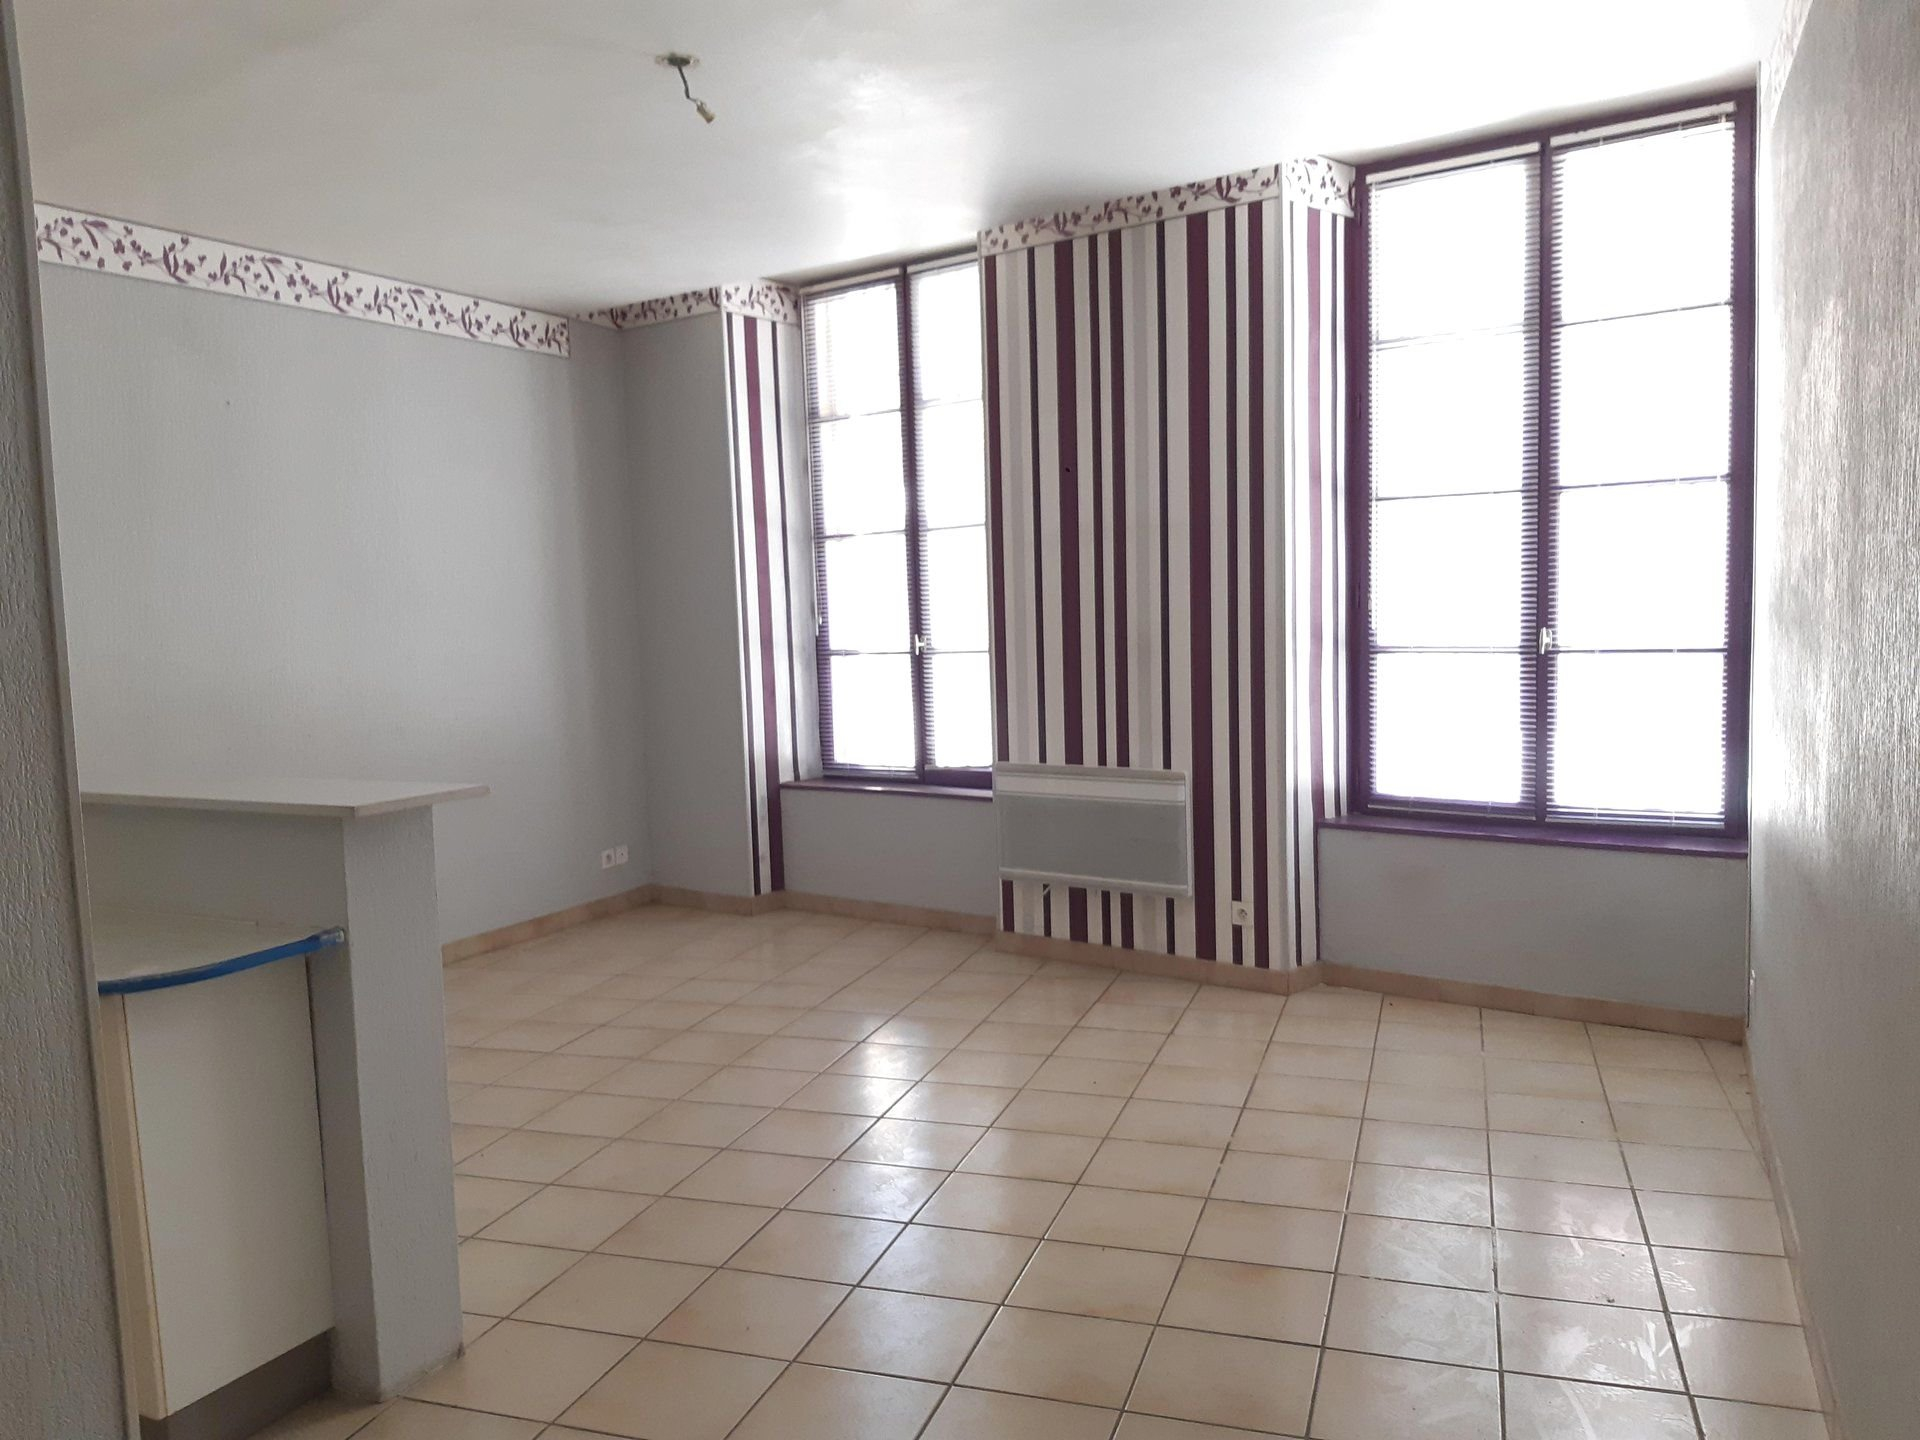 Location Appartement TARASCON Mandat : 1011